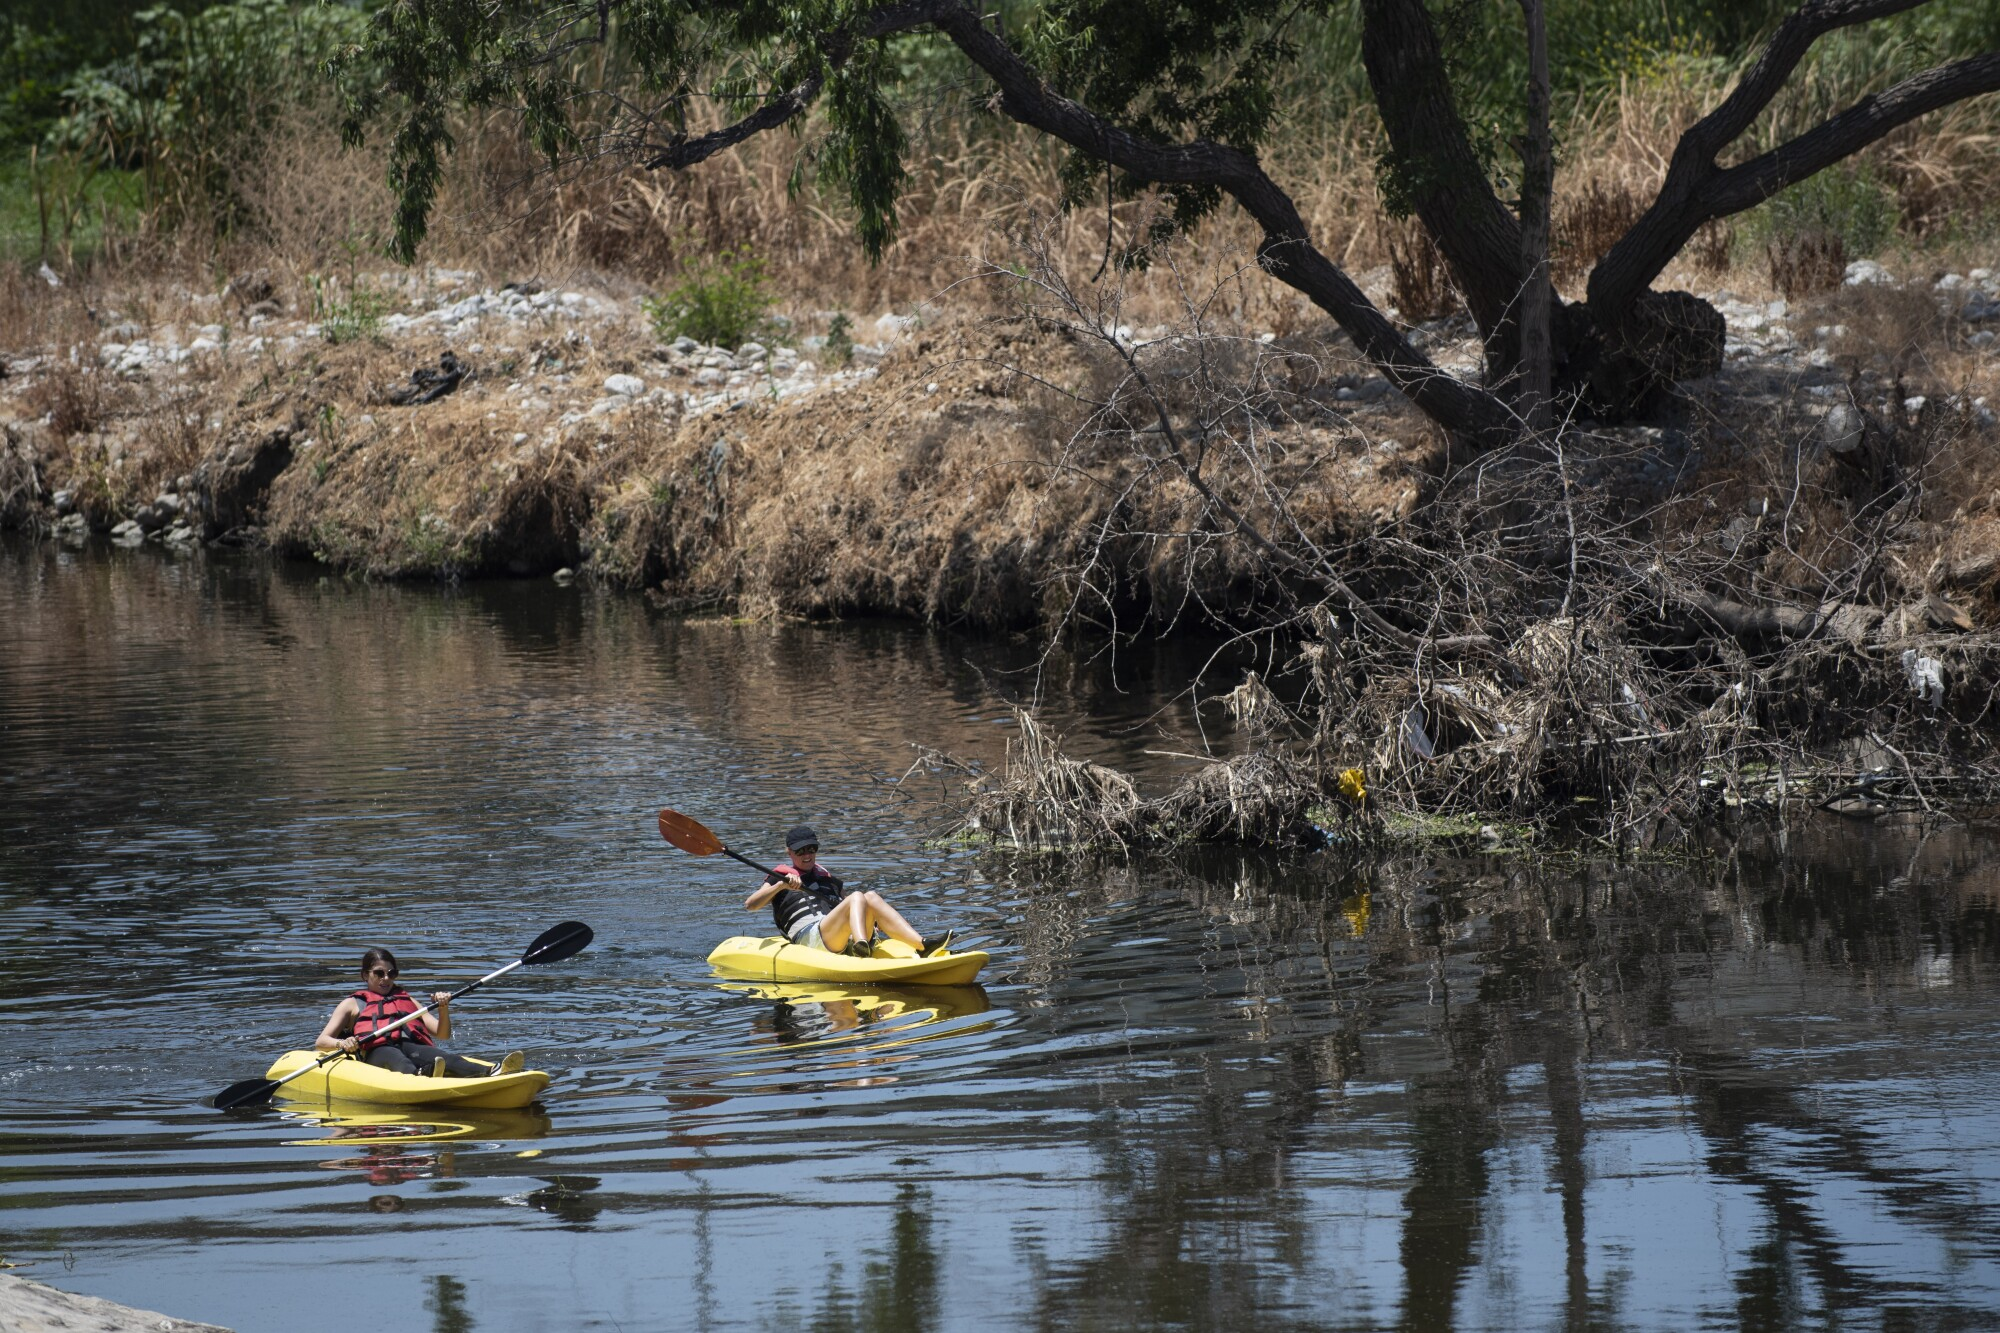 Kayakers float on the Los Angeles River in Elysian Park.